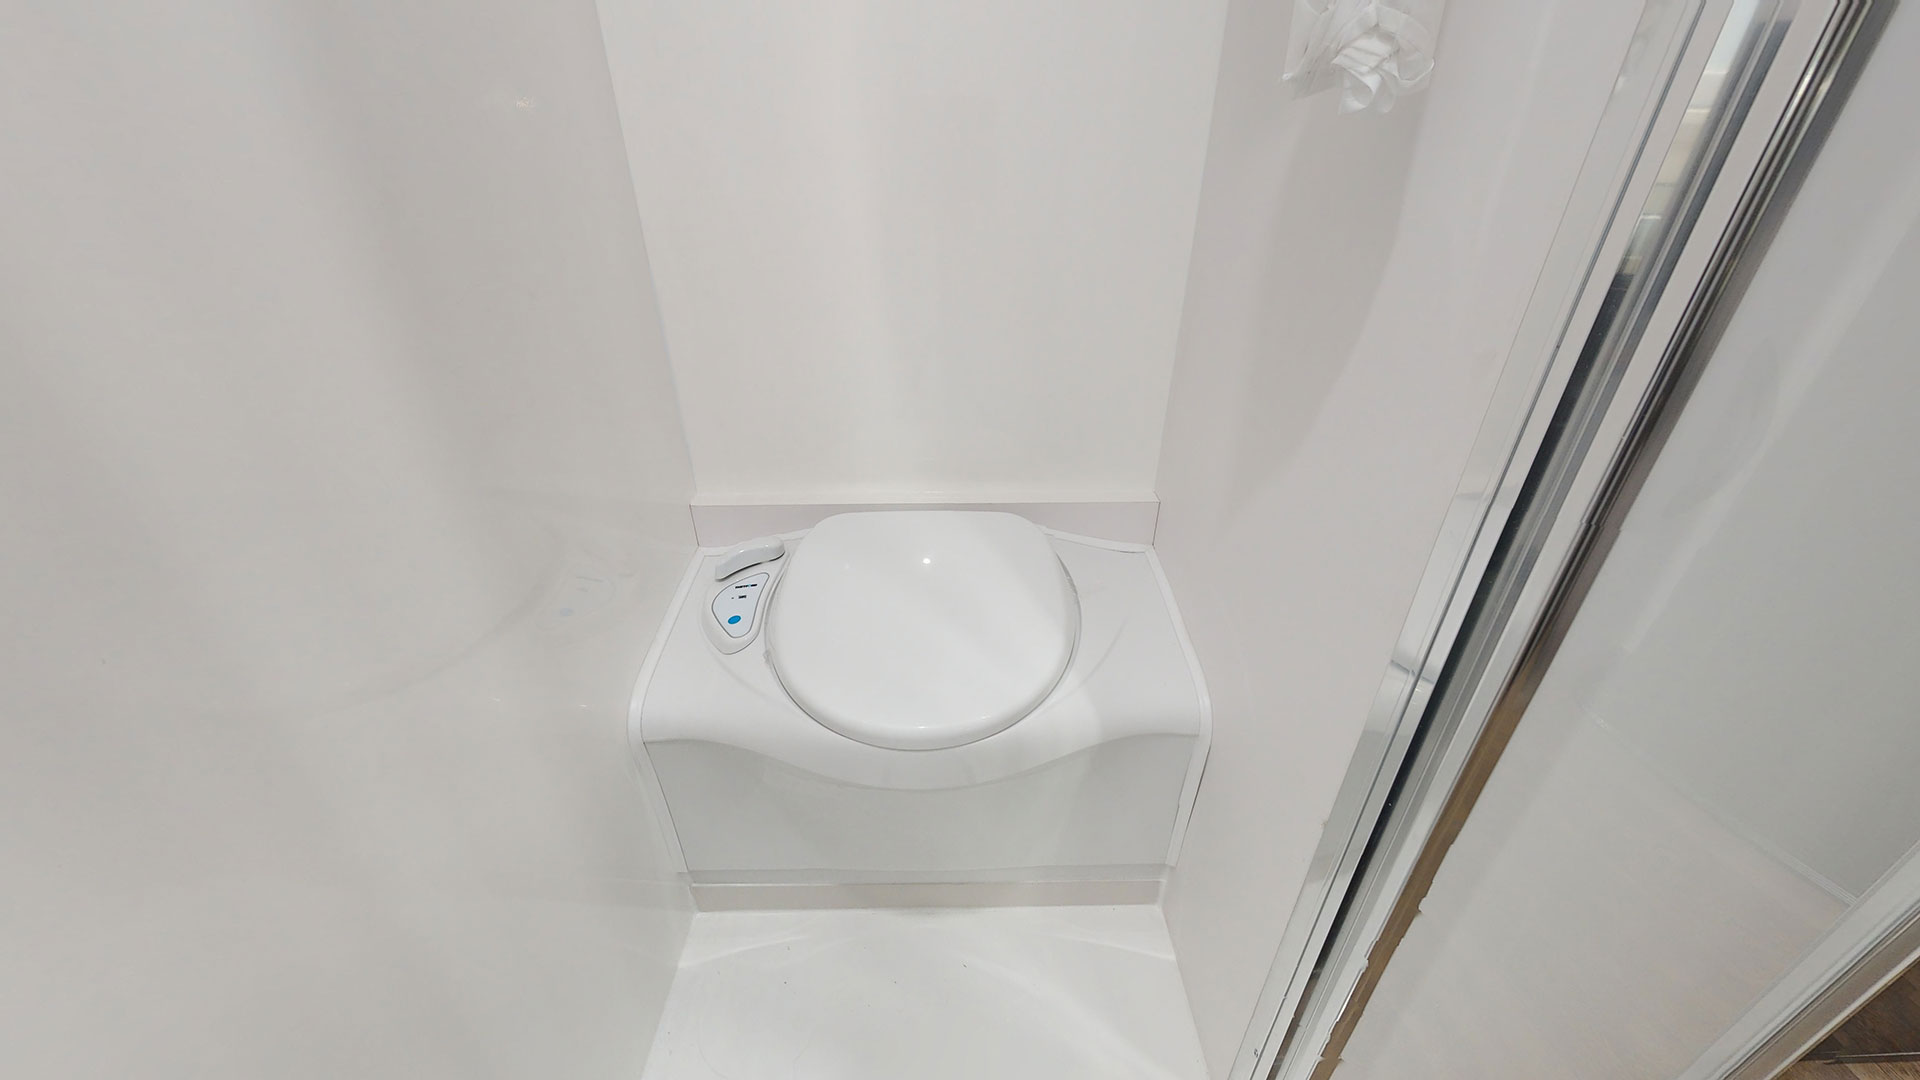 The Hurricanes' en-suite has a shower, a toilet, a vanity basin, and a shaving cabinet. Awesome set up!